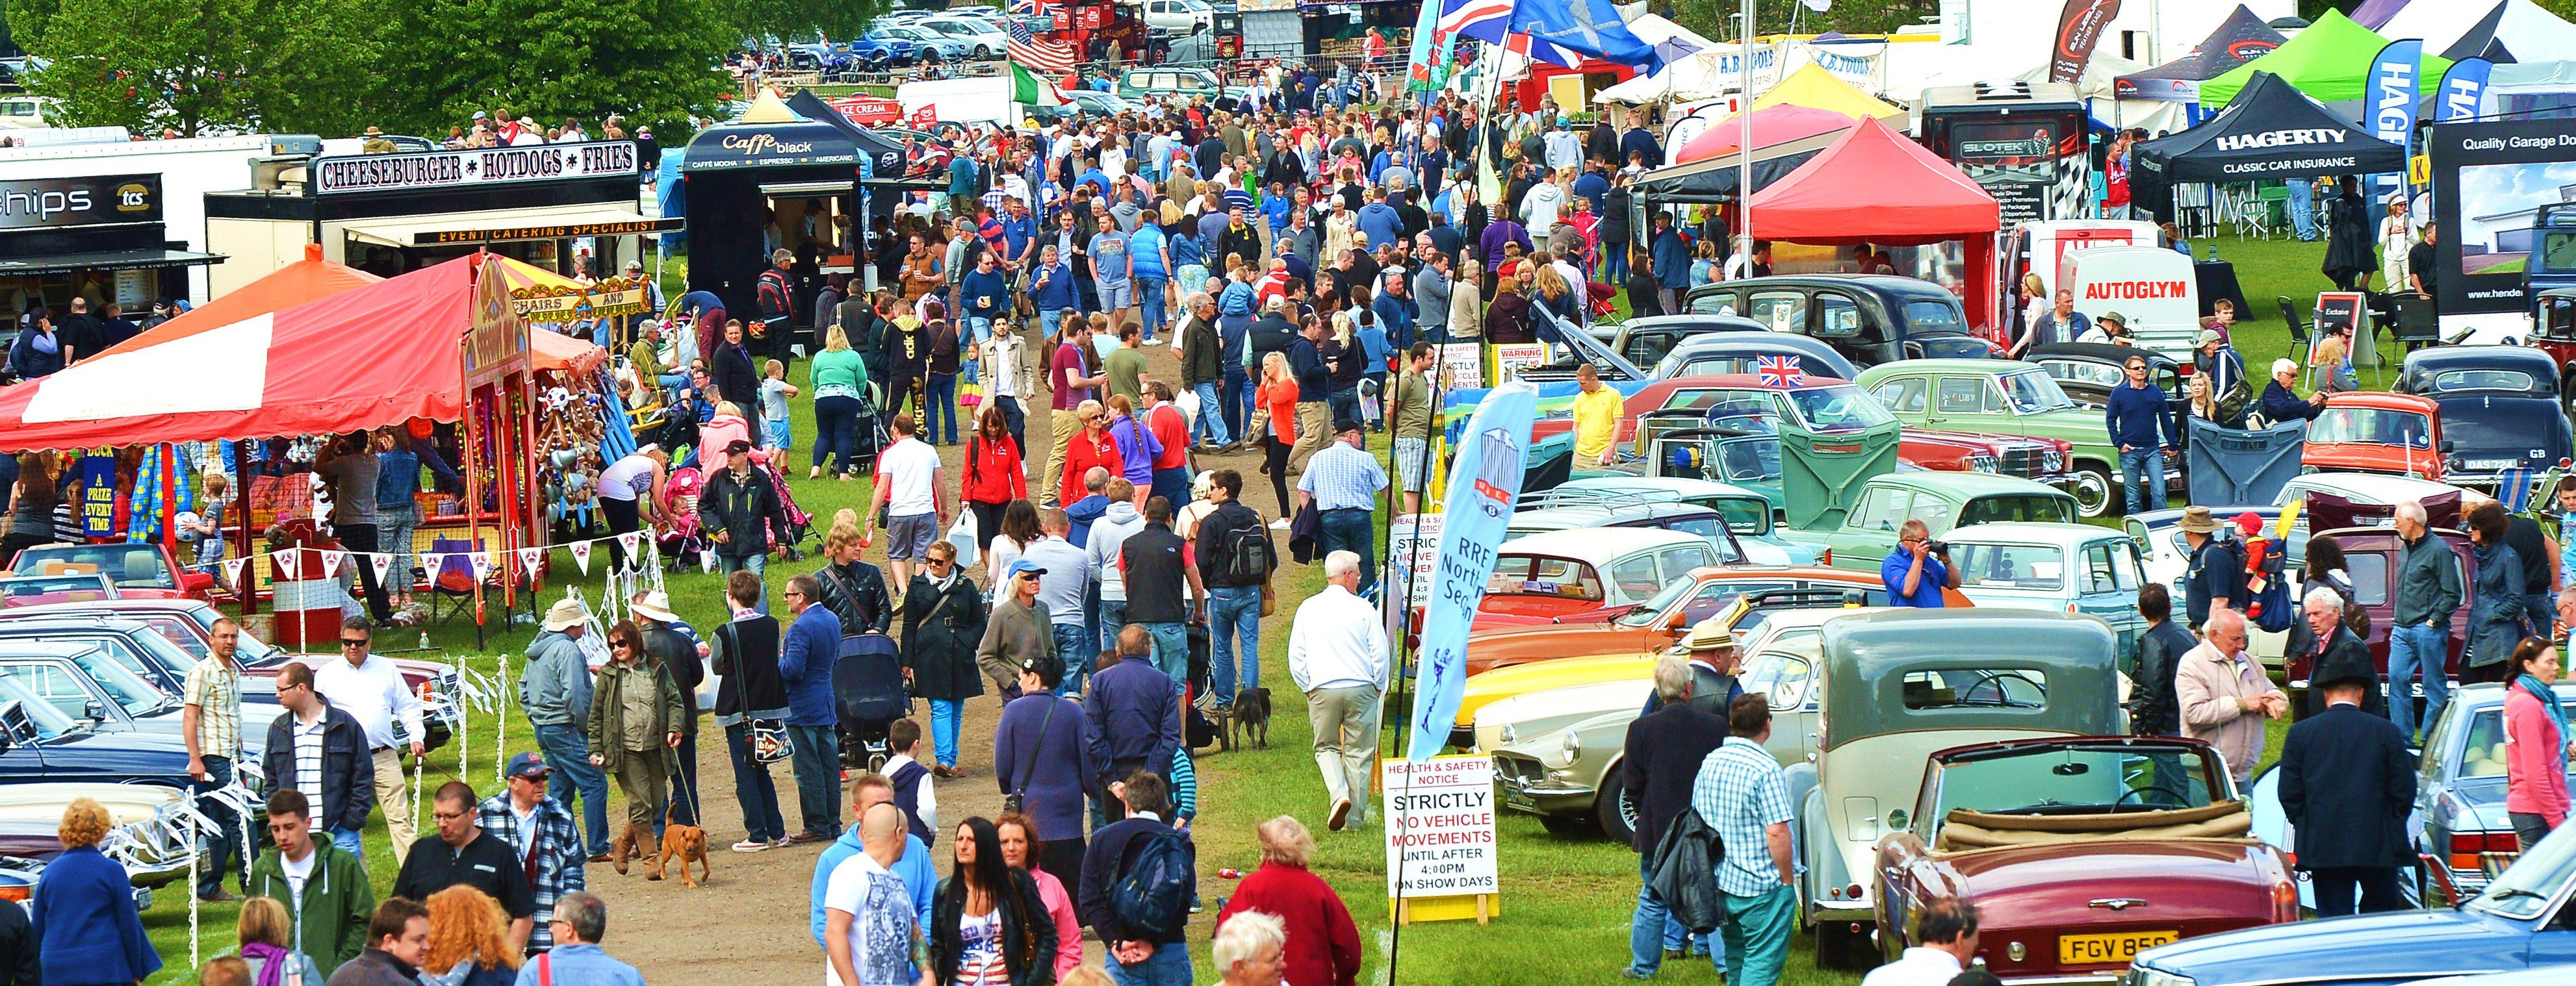 The Classic Car Show Crowds